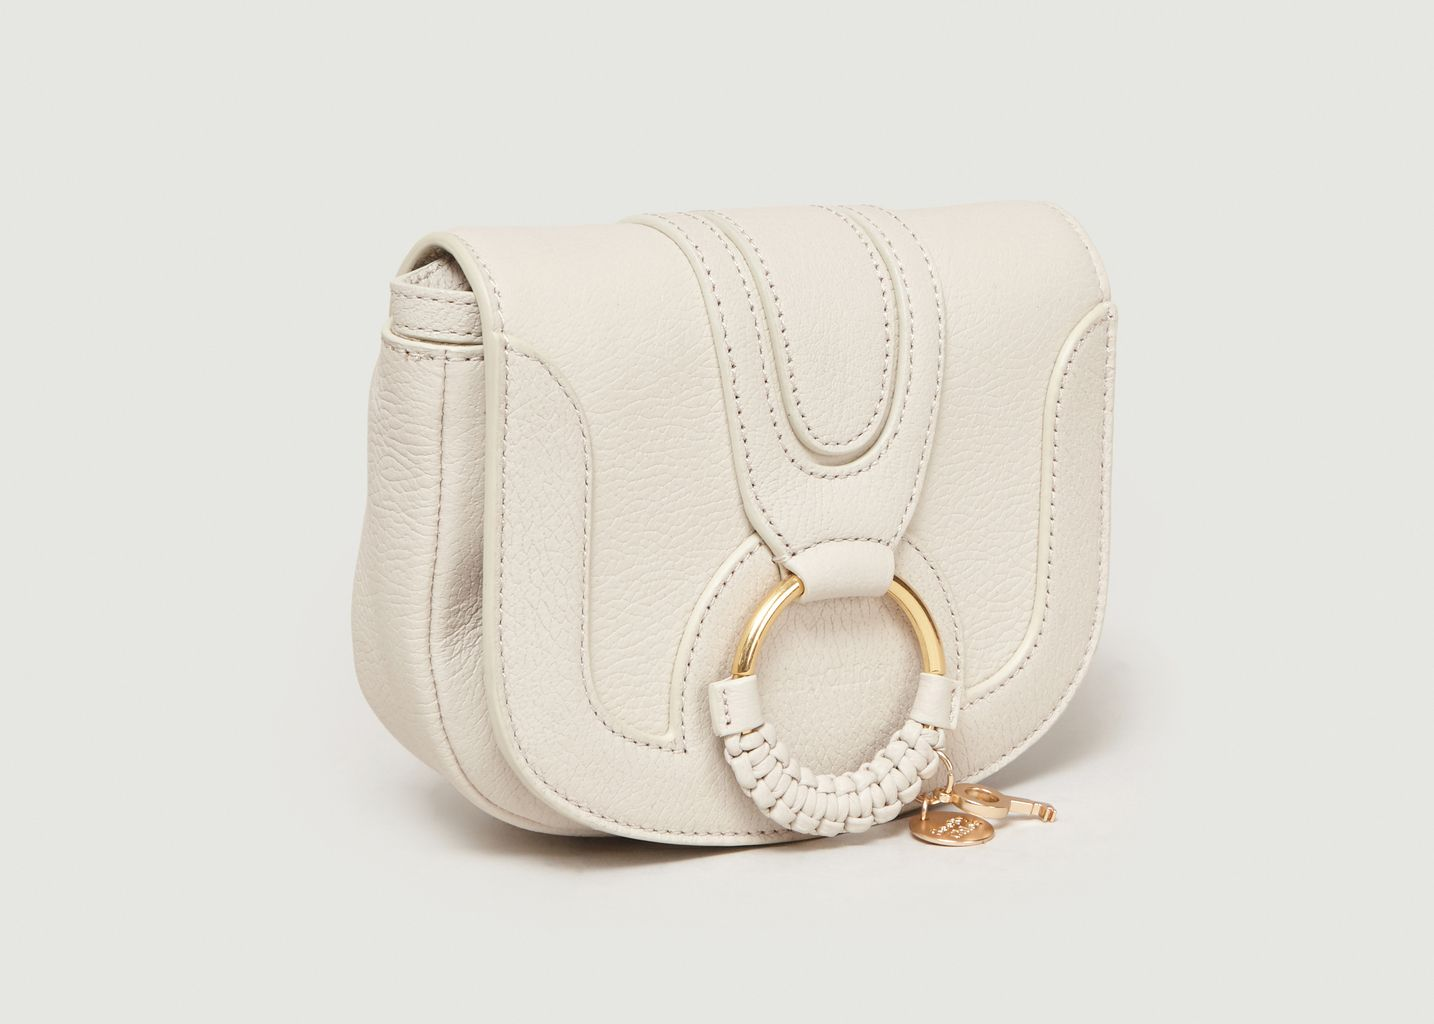 Sac Hana Mini - See by Chloé